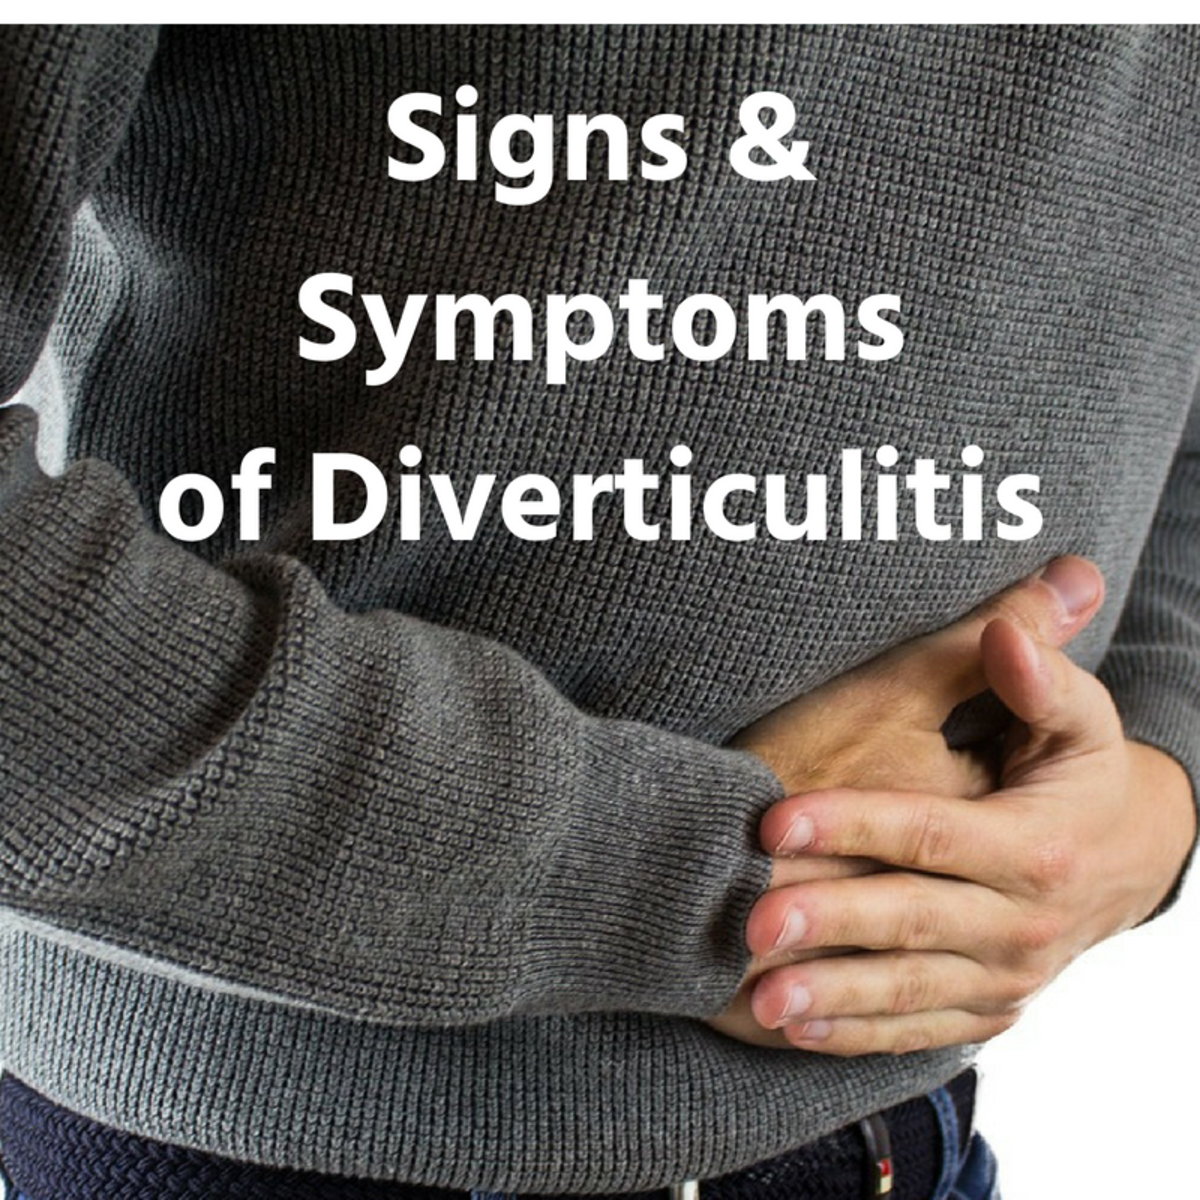 My Experience With the Symptoms of Diverticulitis